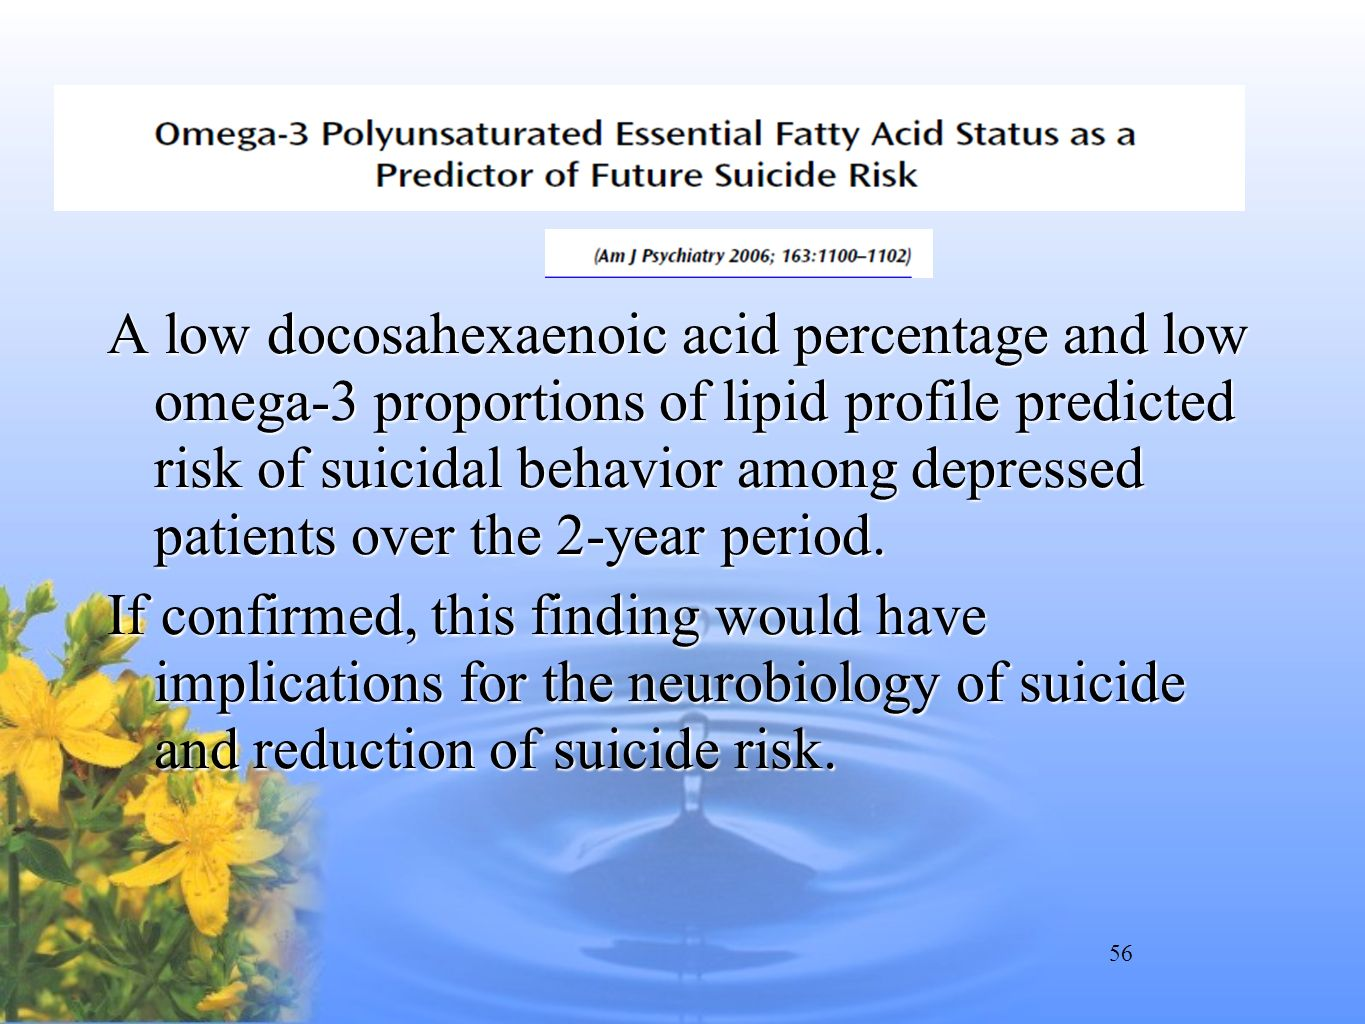 A low docosahexaenoic acid percentage and low omega-3 proportions of lipid profile predicted risk of suicidal behavior among depressed patients over the 2-year period.